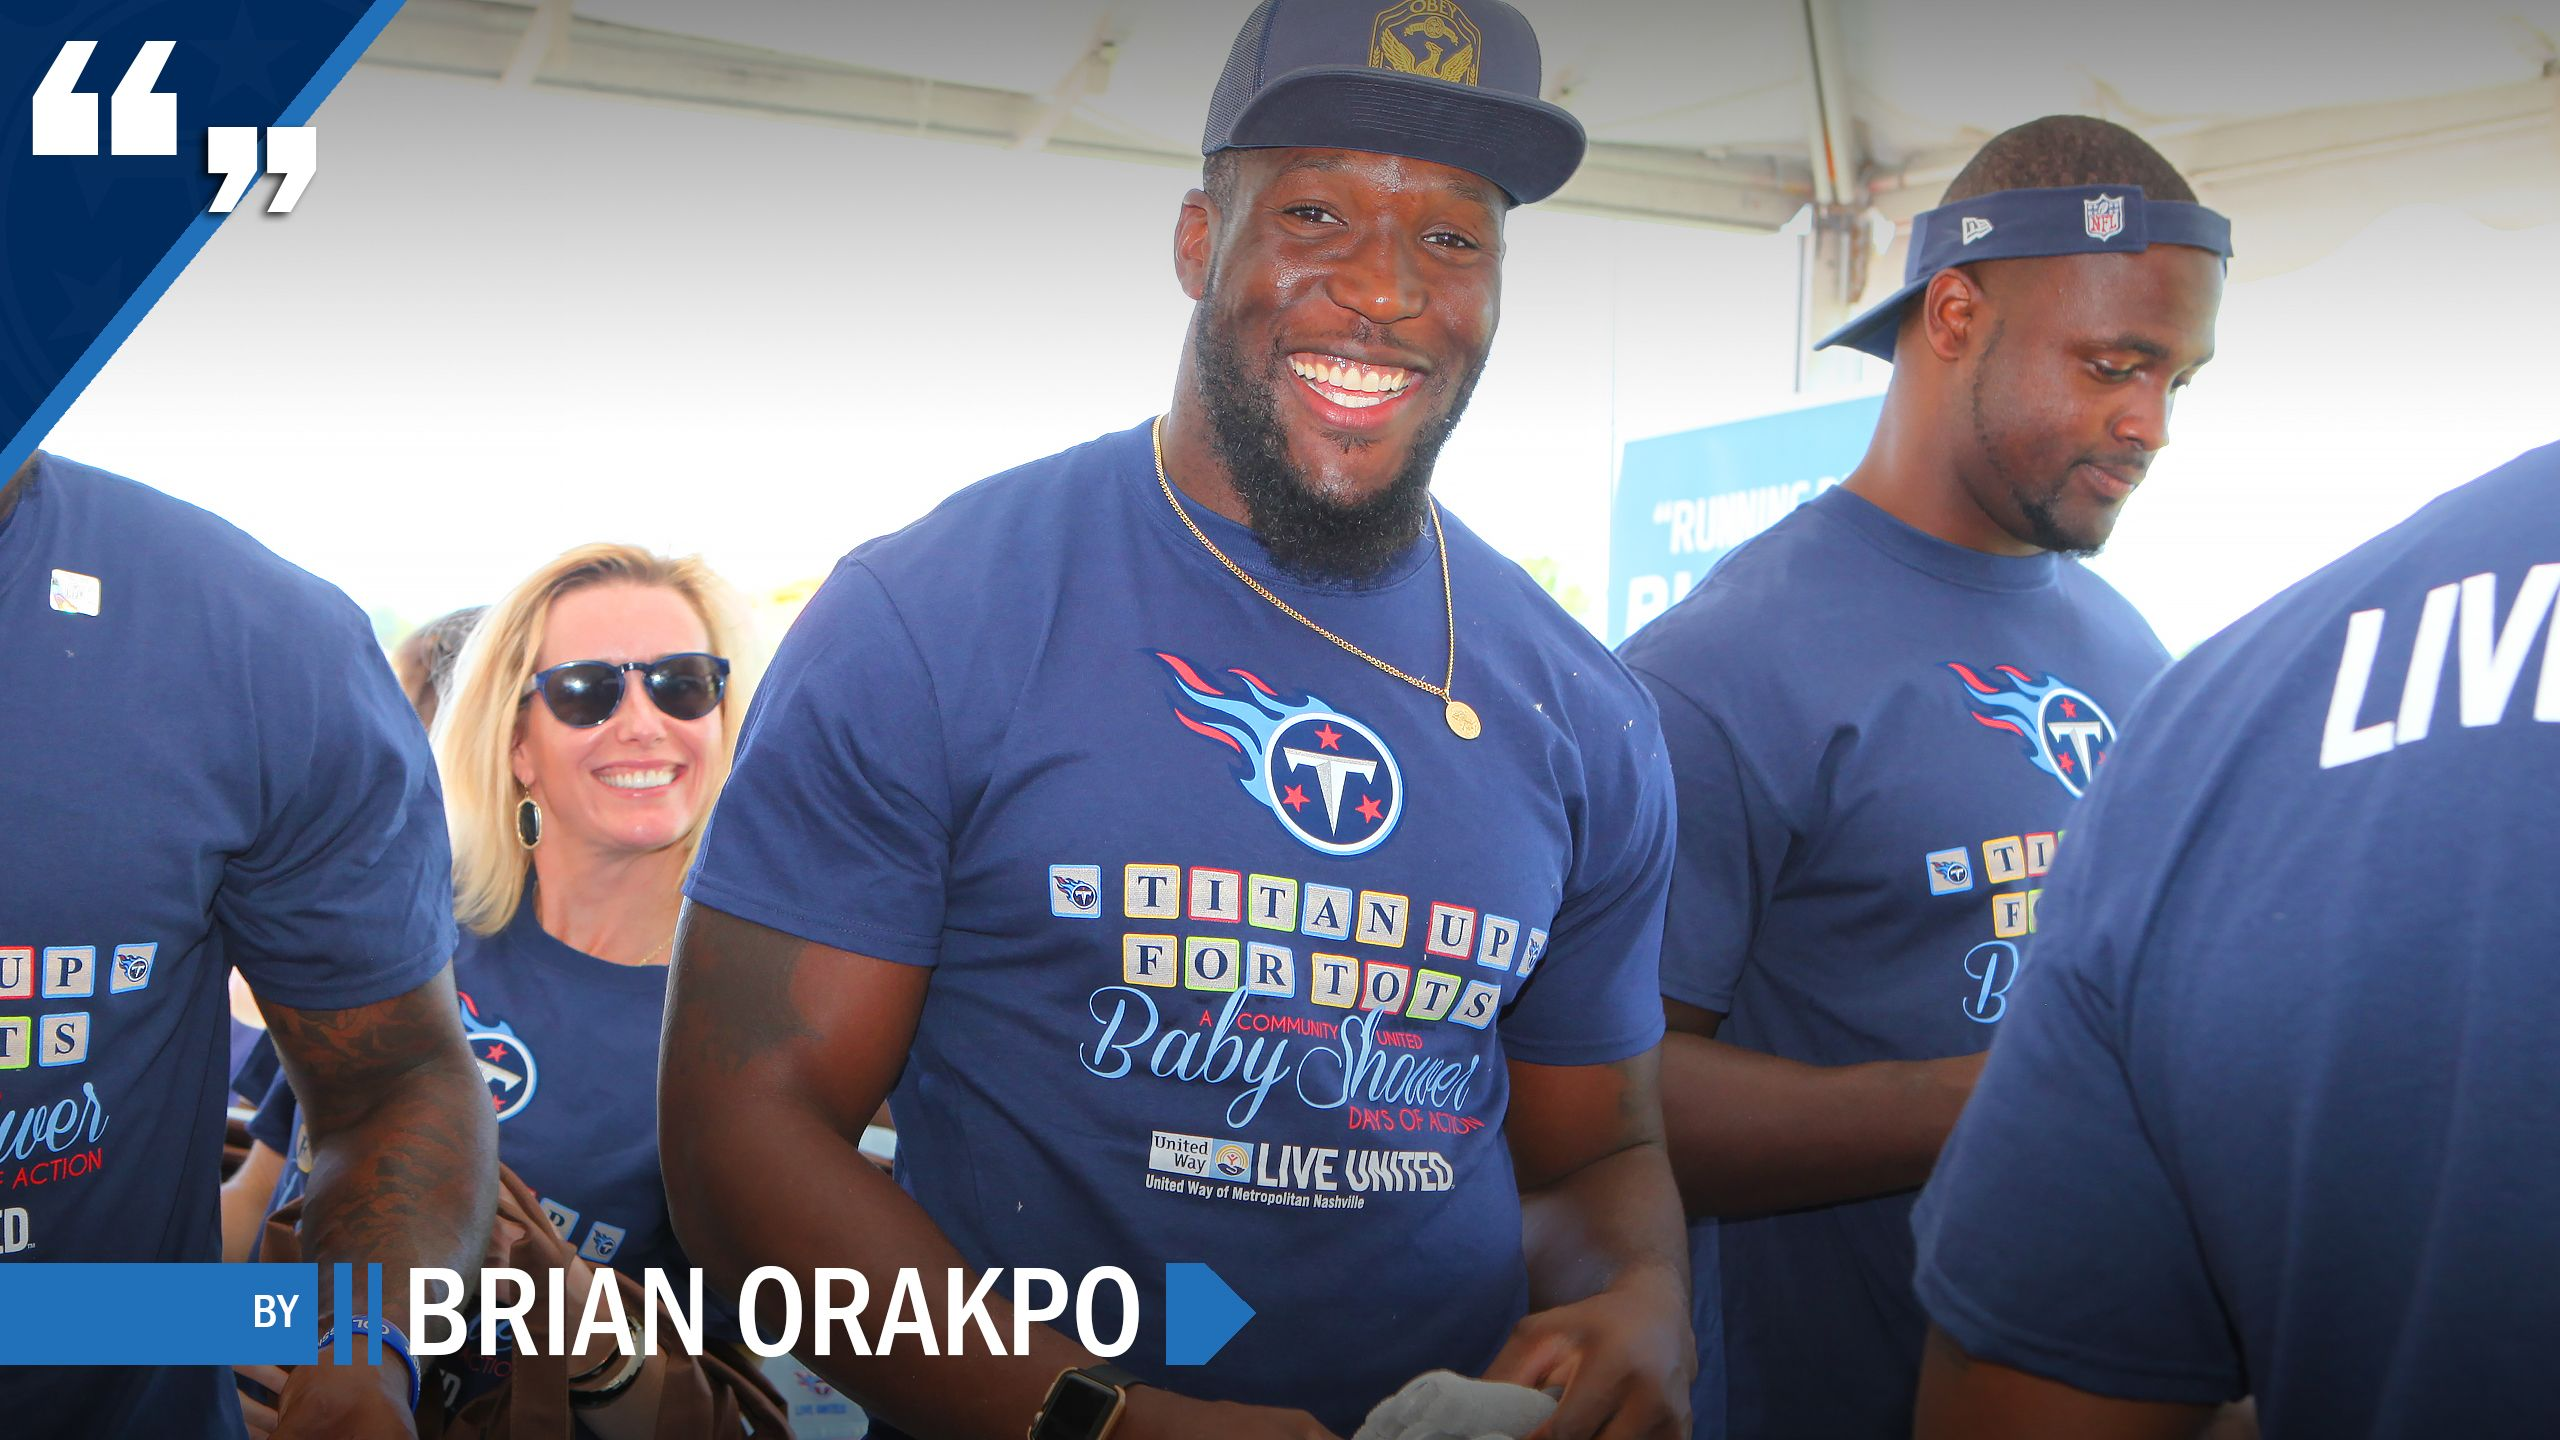 THIS IS MY STORY  //  by Brian Orakpo